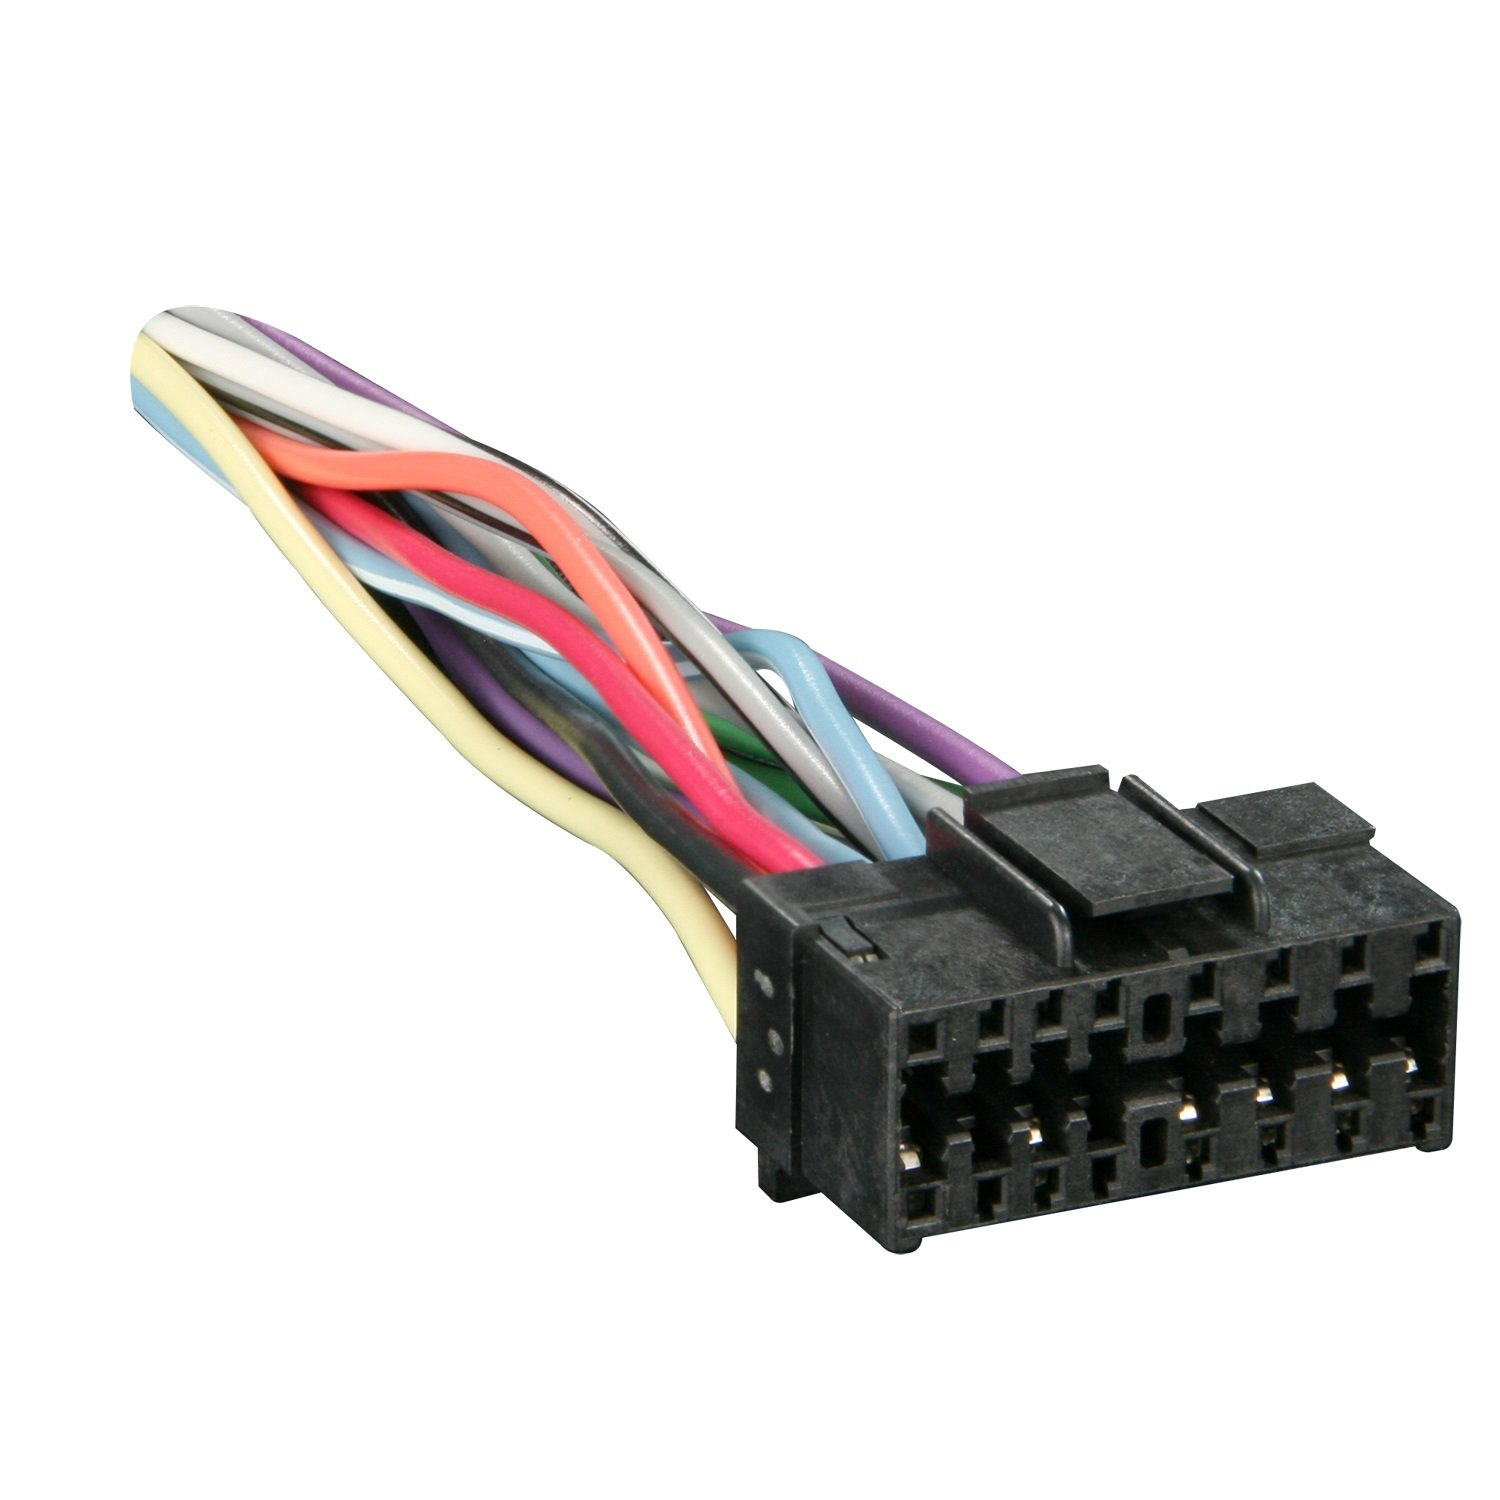 613fEJIm3SL._SL1500_ amazon com metra sy16 0001 16 pin sony power 4 speaker car metra pioneer wiring harness at couponss.co